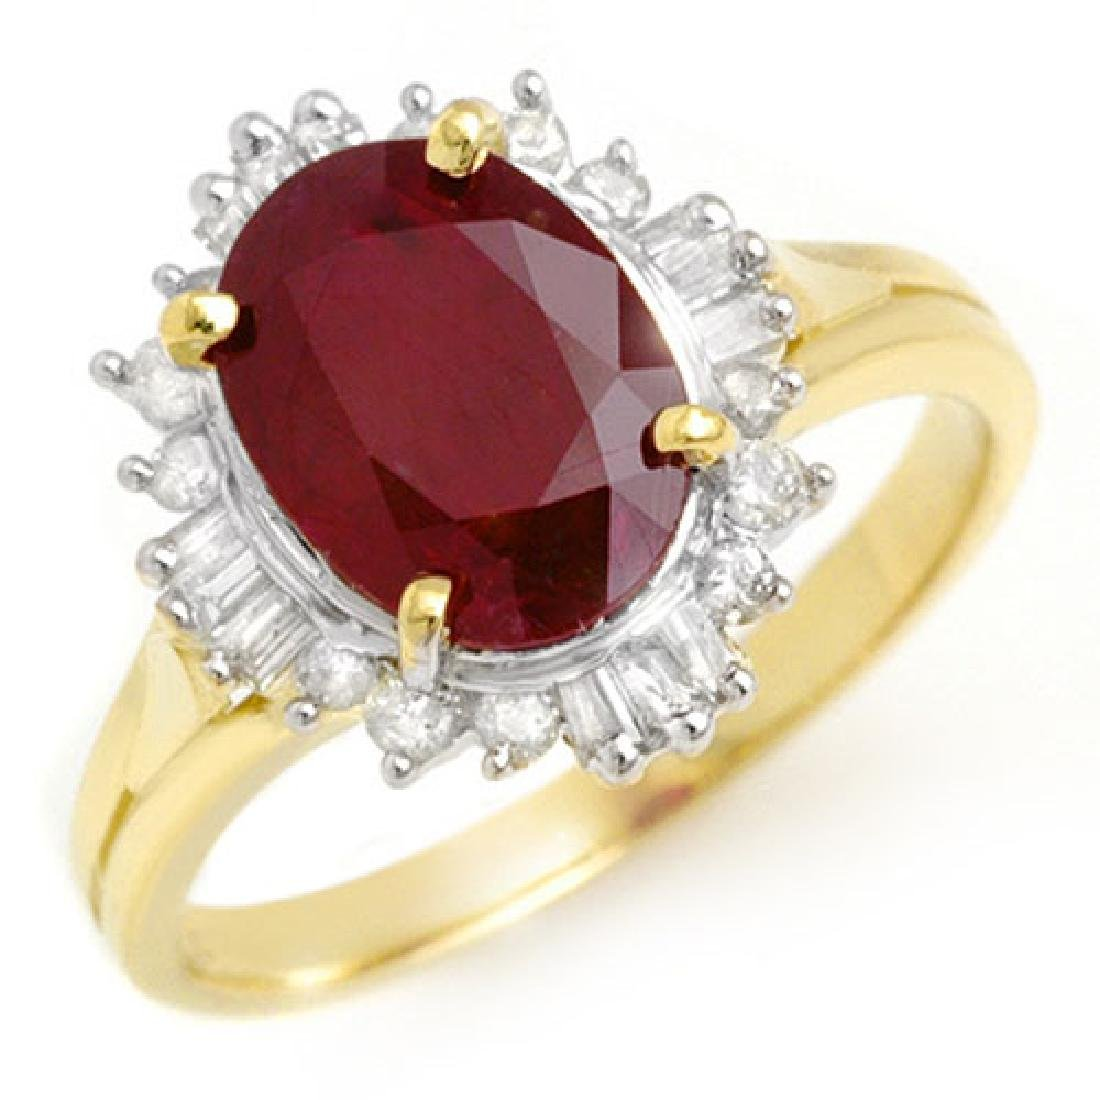 3.66 CTW Ruby & Diamond Ring 14K Yellow Gold